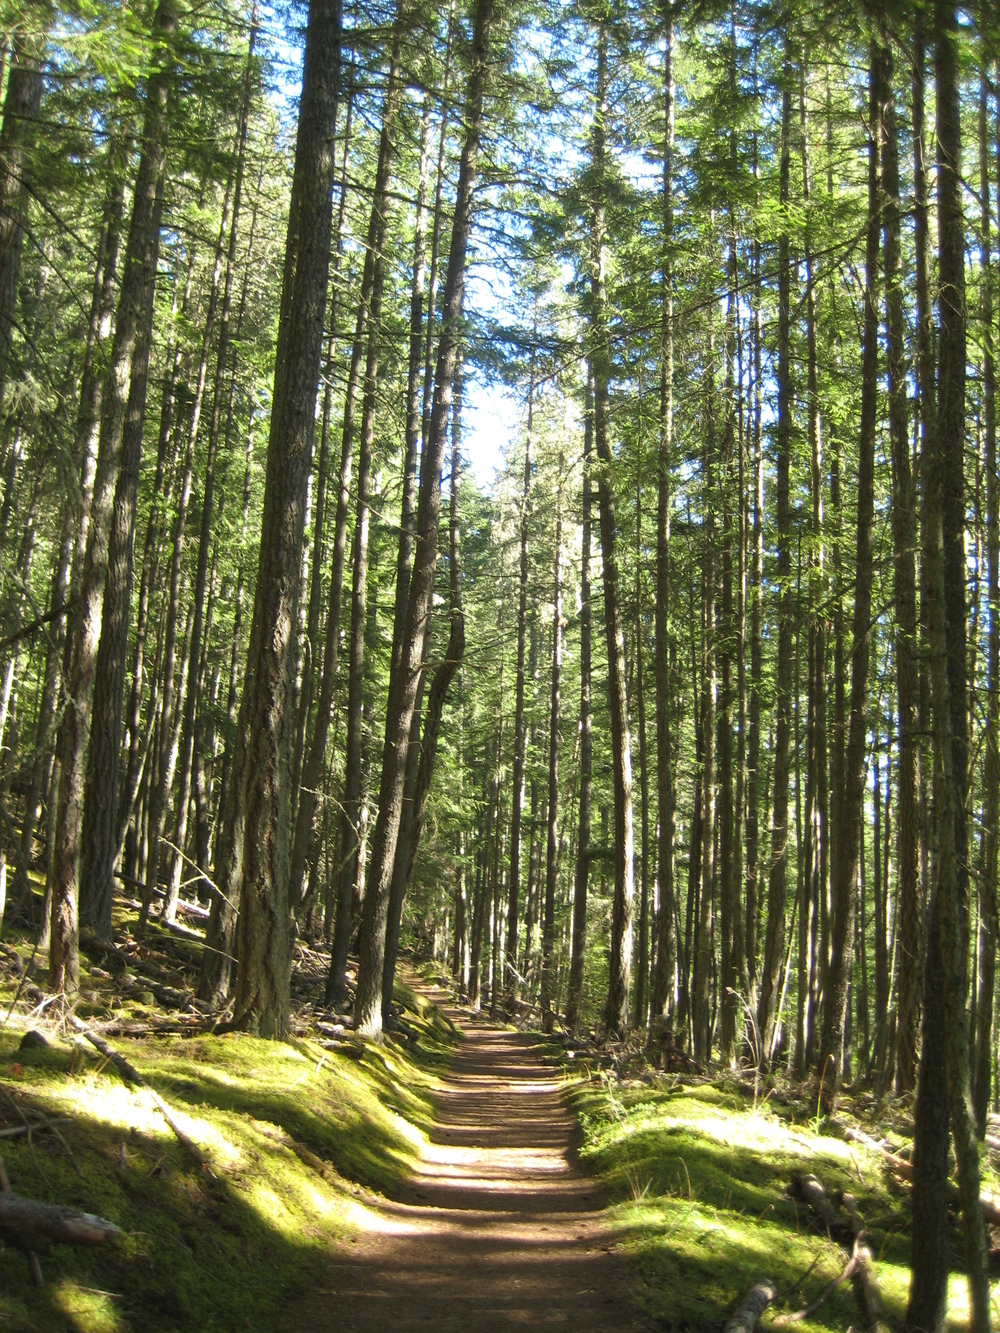 Hiking through the trees on Orcas Island